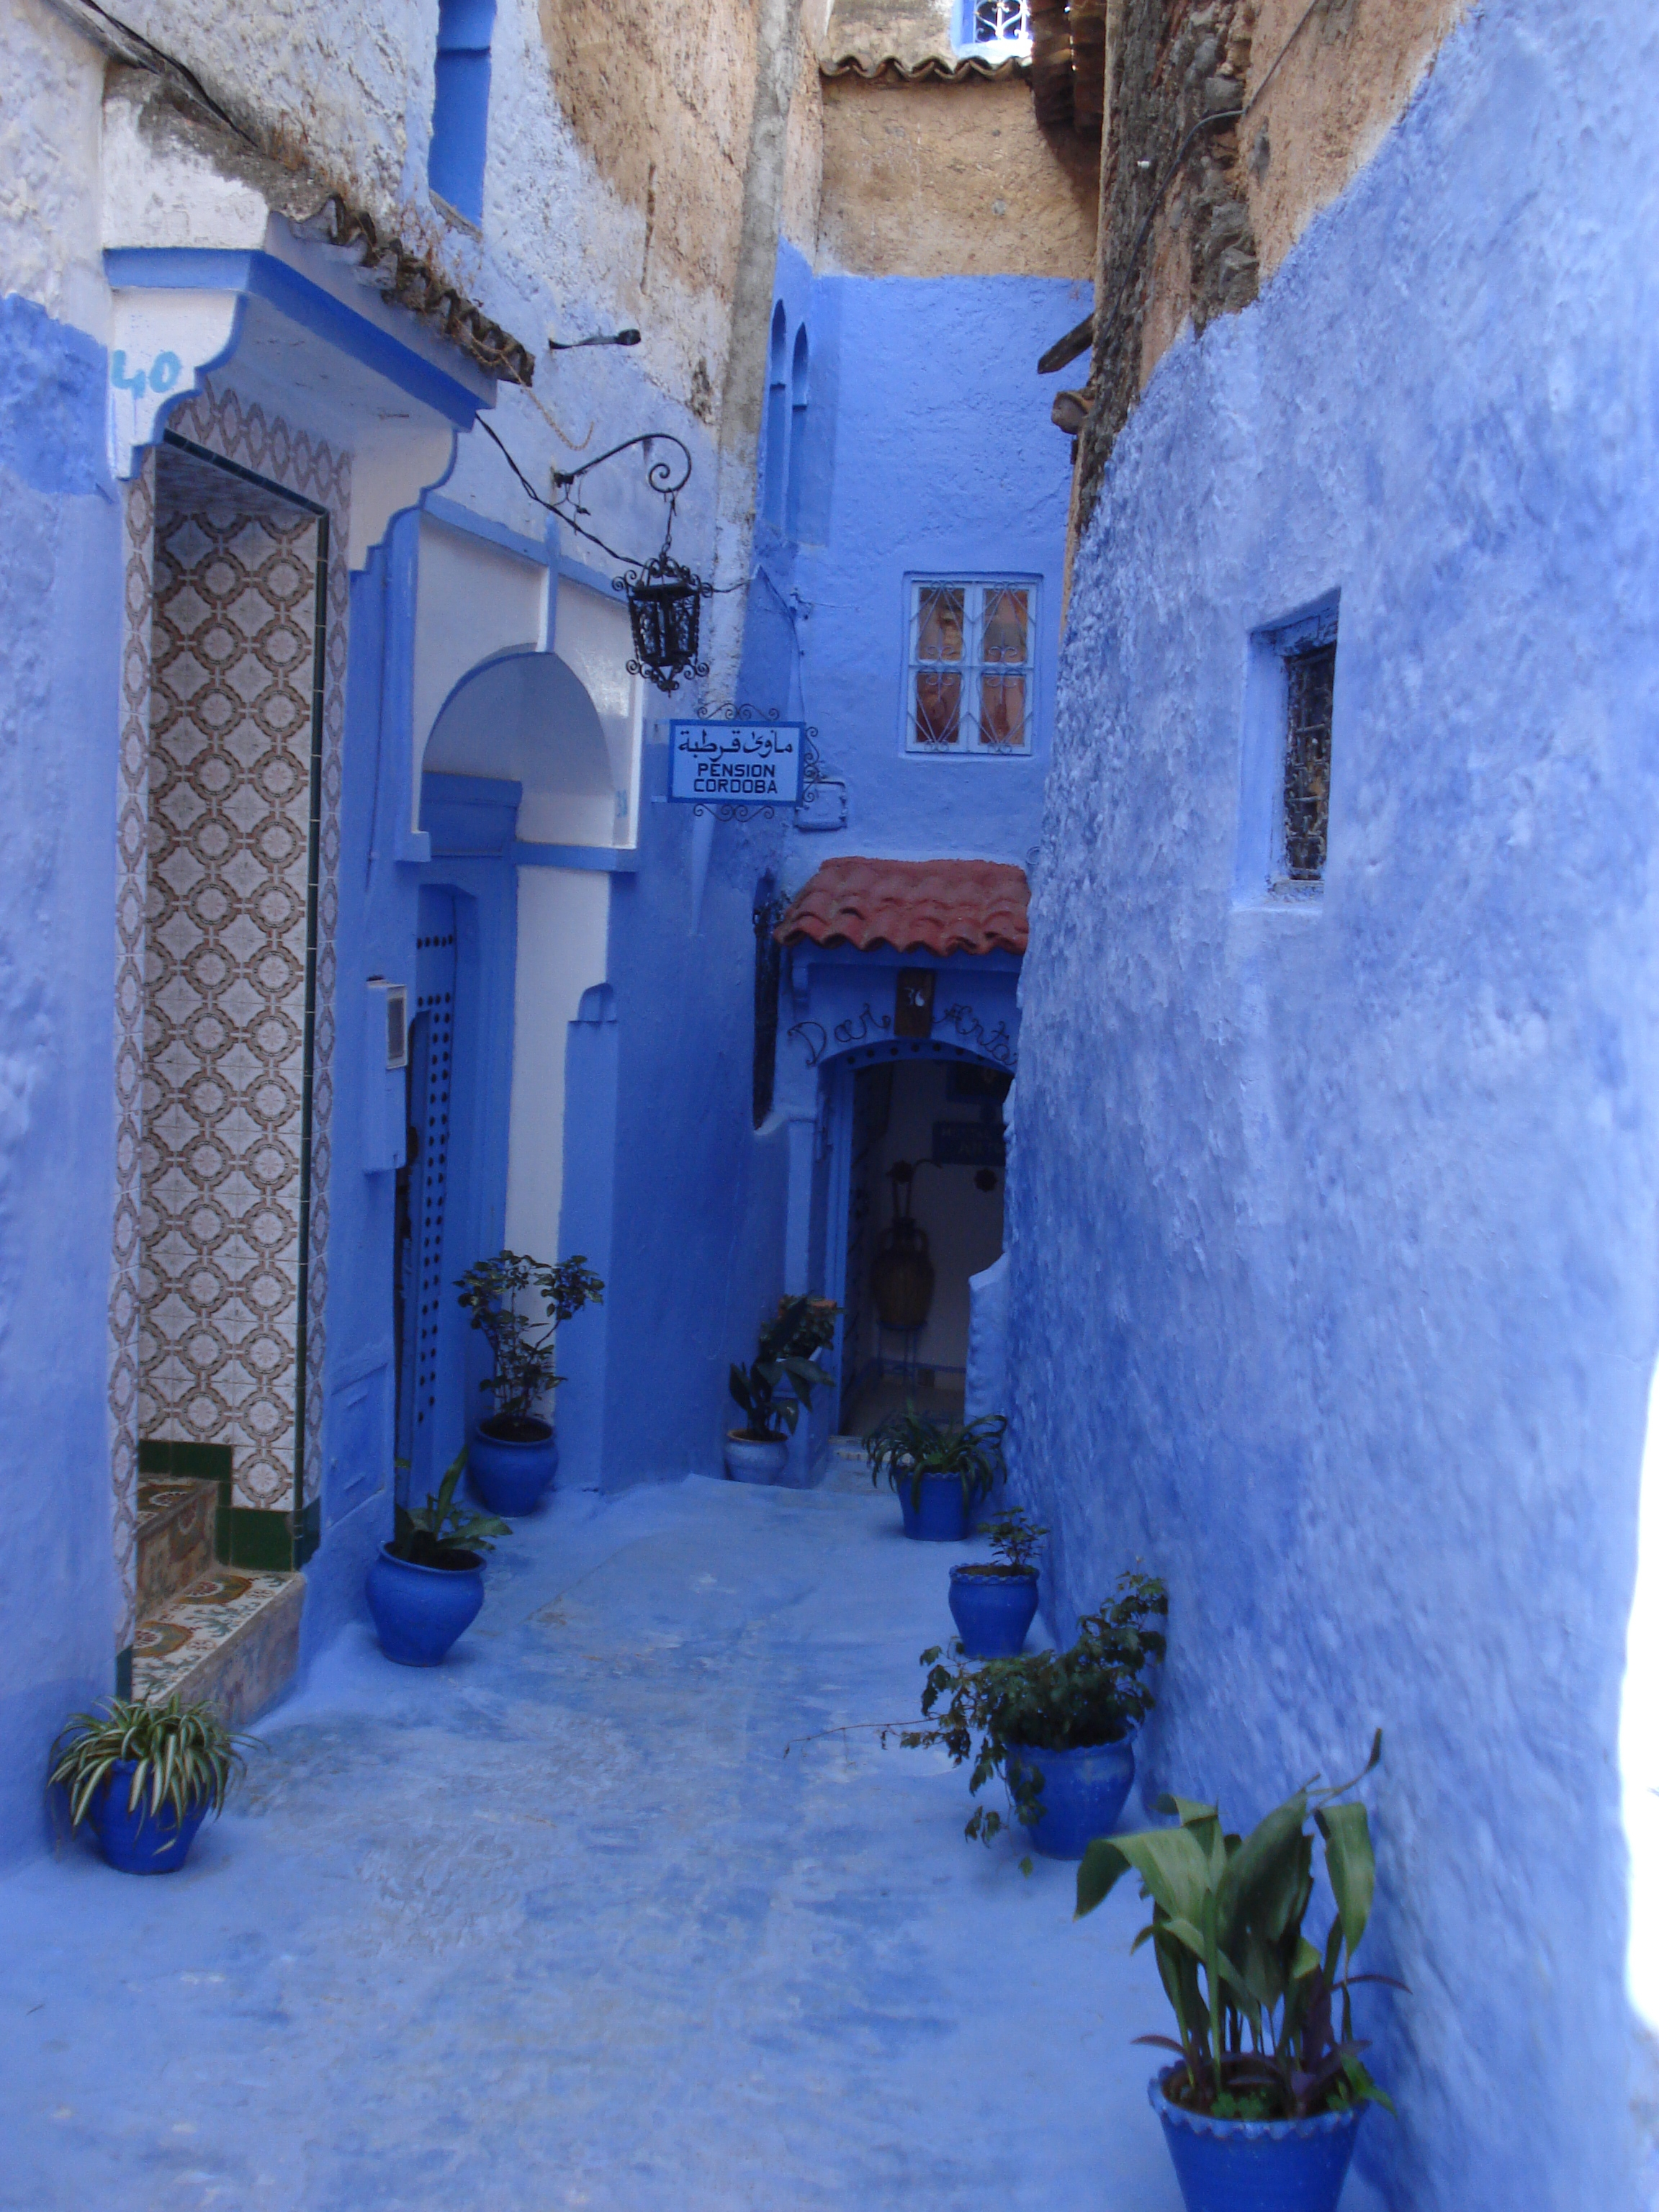 Chefchaouen Morocco  City new picture : Chefchaouen Morocco